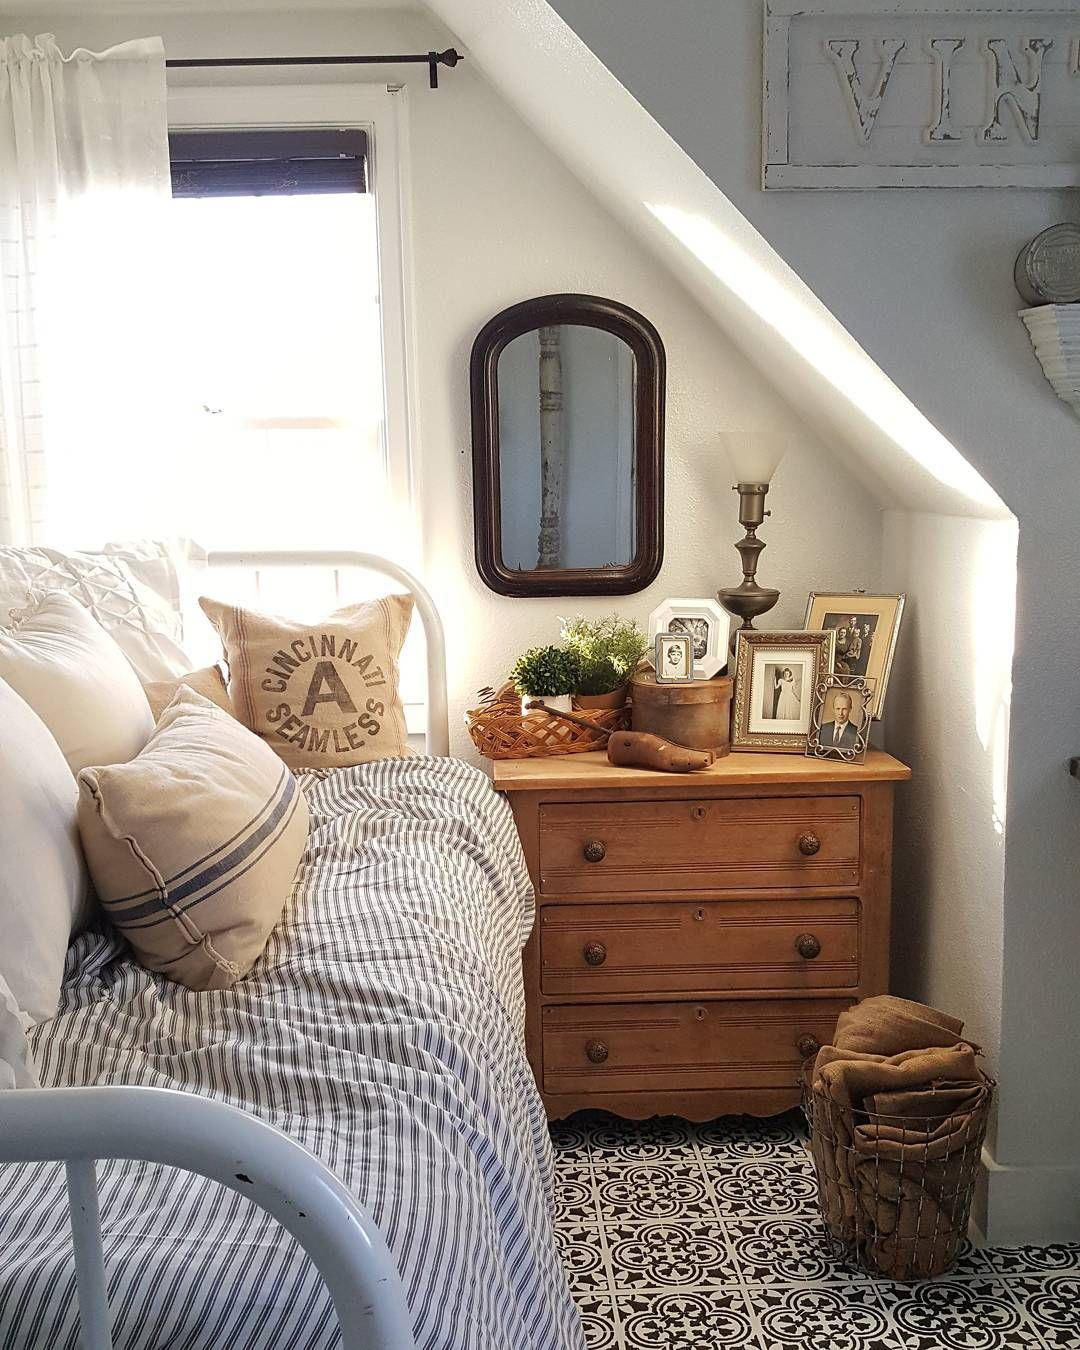 Superbe Mom Of Girls, RN, Collected Home Through Thrifting And DIY DM For  Collaborations. Attic BedroomsCottage Bedroom DecorAttic Bedroom SmallEaves  ...